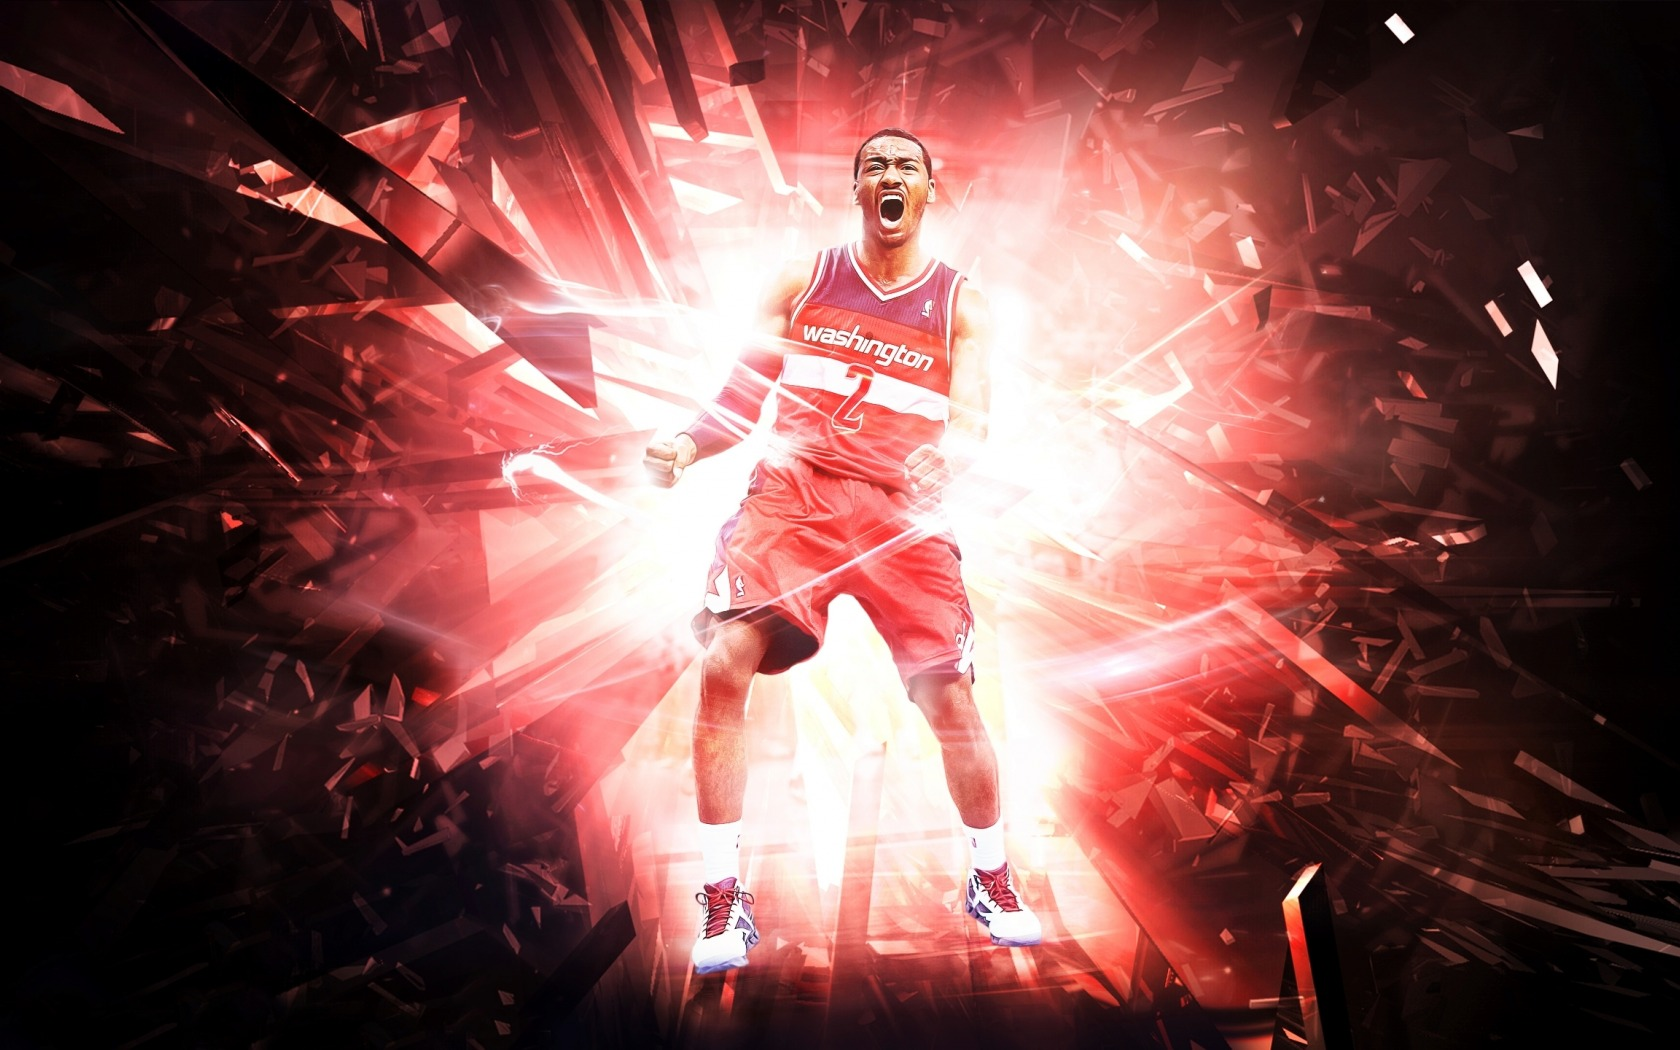 Free Download Awesome Basketball Wallpapers Hd 1680x1050 For Your Desktop Mobile Tablet Explore 77 Awesome Basketball Backgrounds Basketball Court Wallpaper Awesome Nba Wallpapers Hd